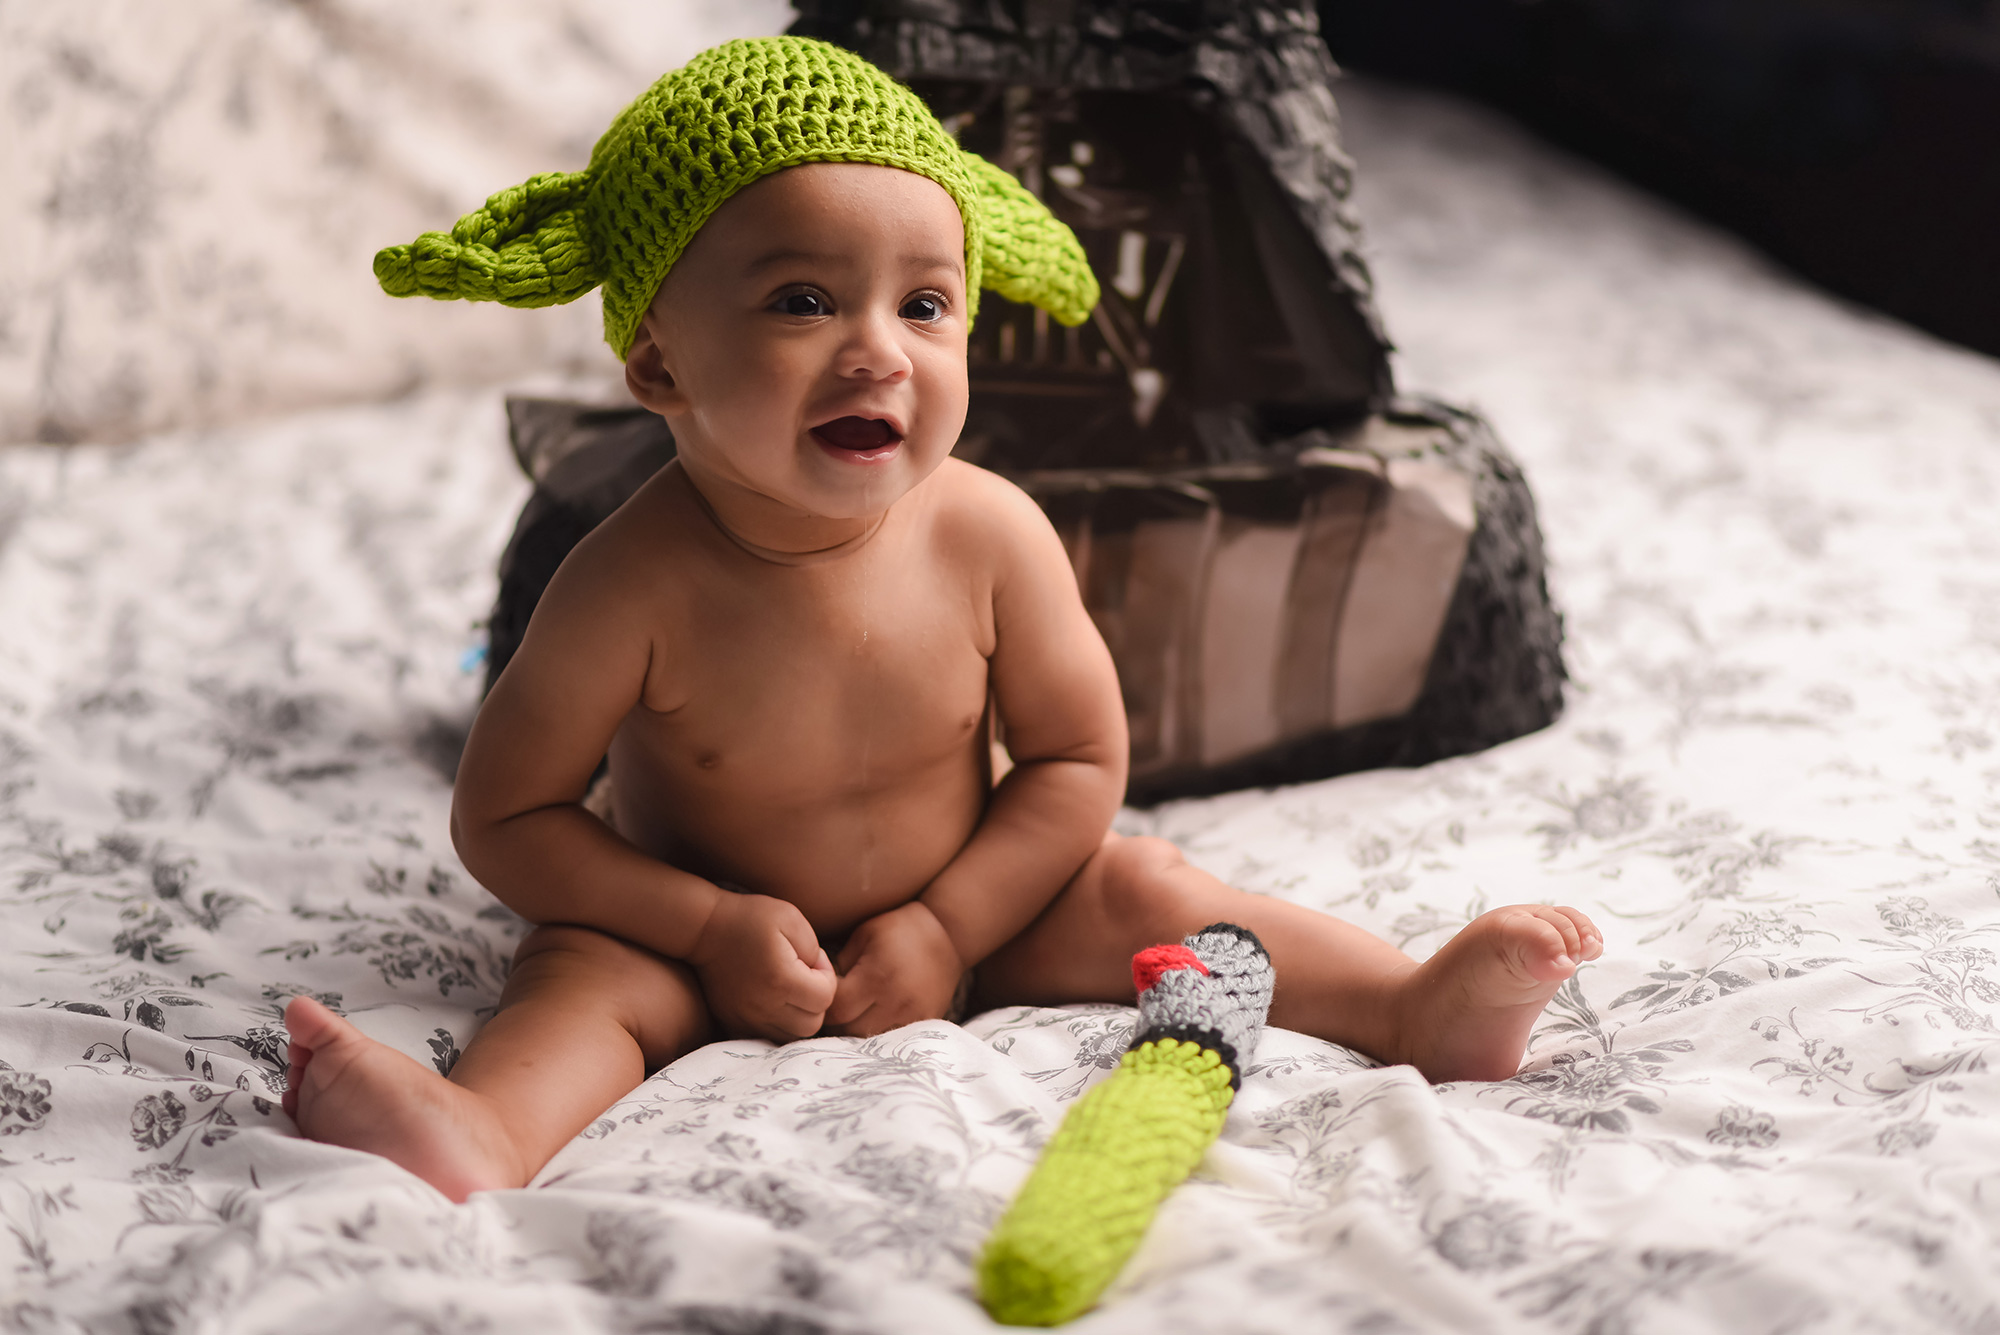 https://bworthyphotography.smugmug.com/BW-Website-Family-Session/Star-Wars-Luke